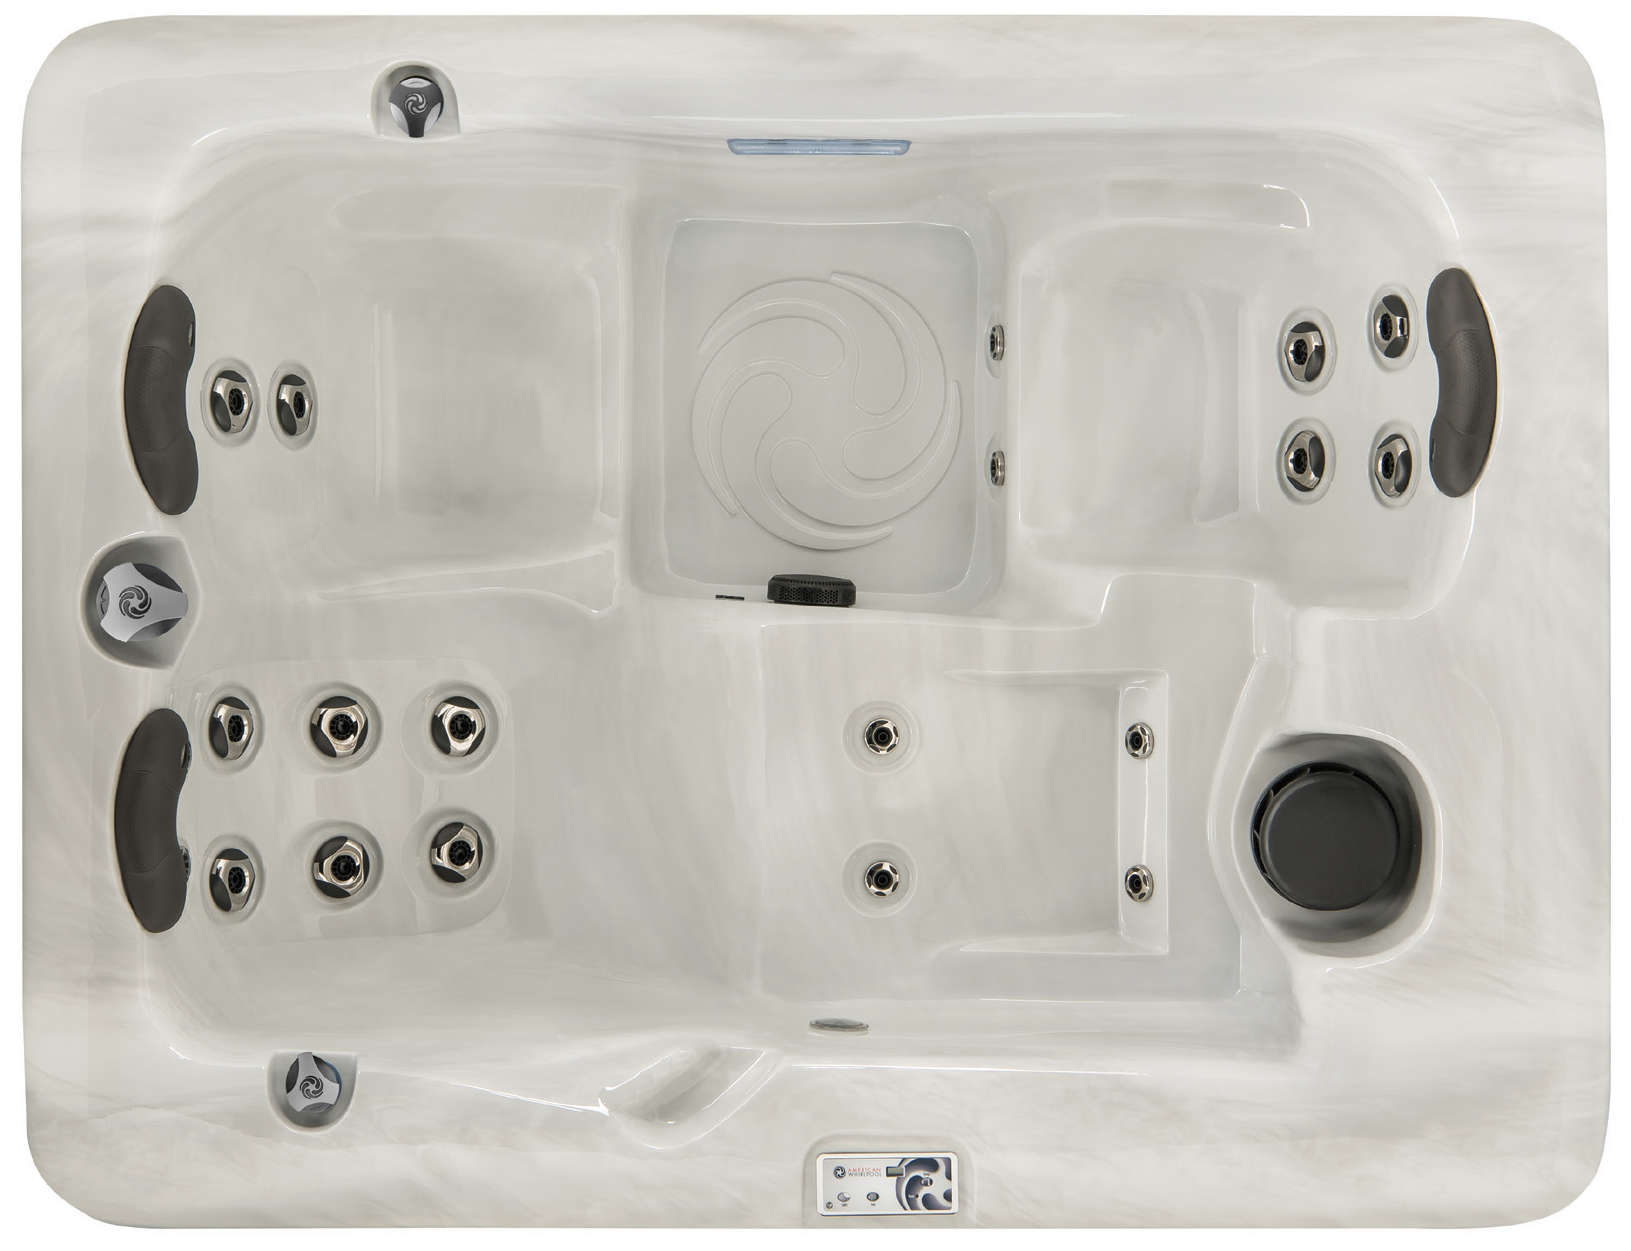 American Whirlpool 151 - Carddine Home Resort Products